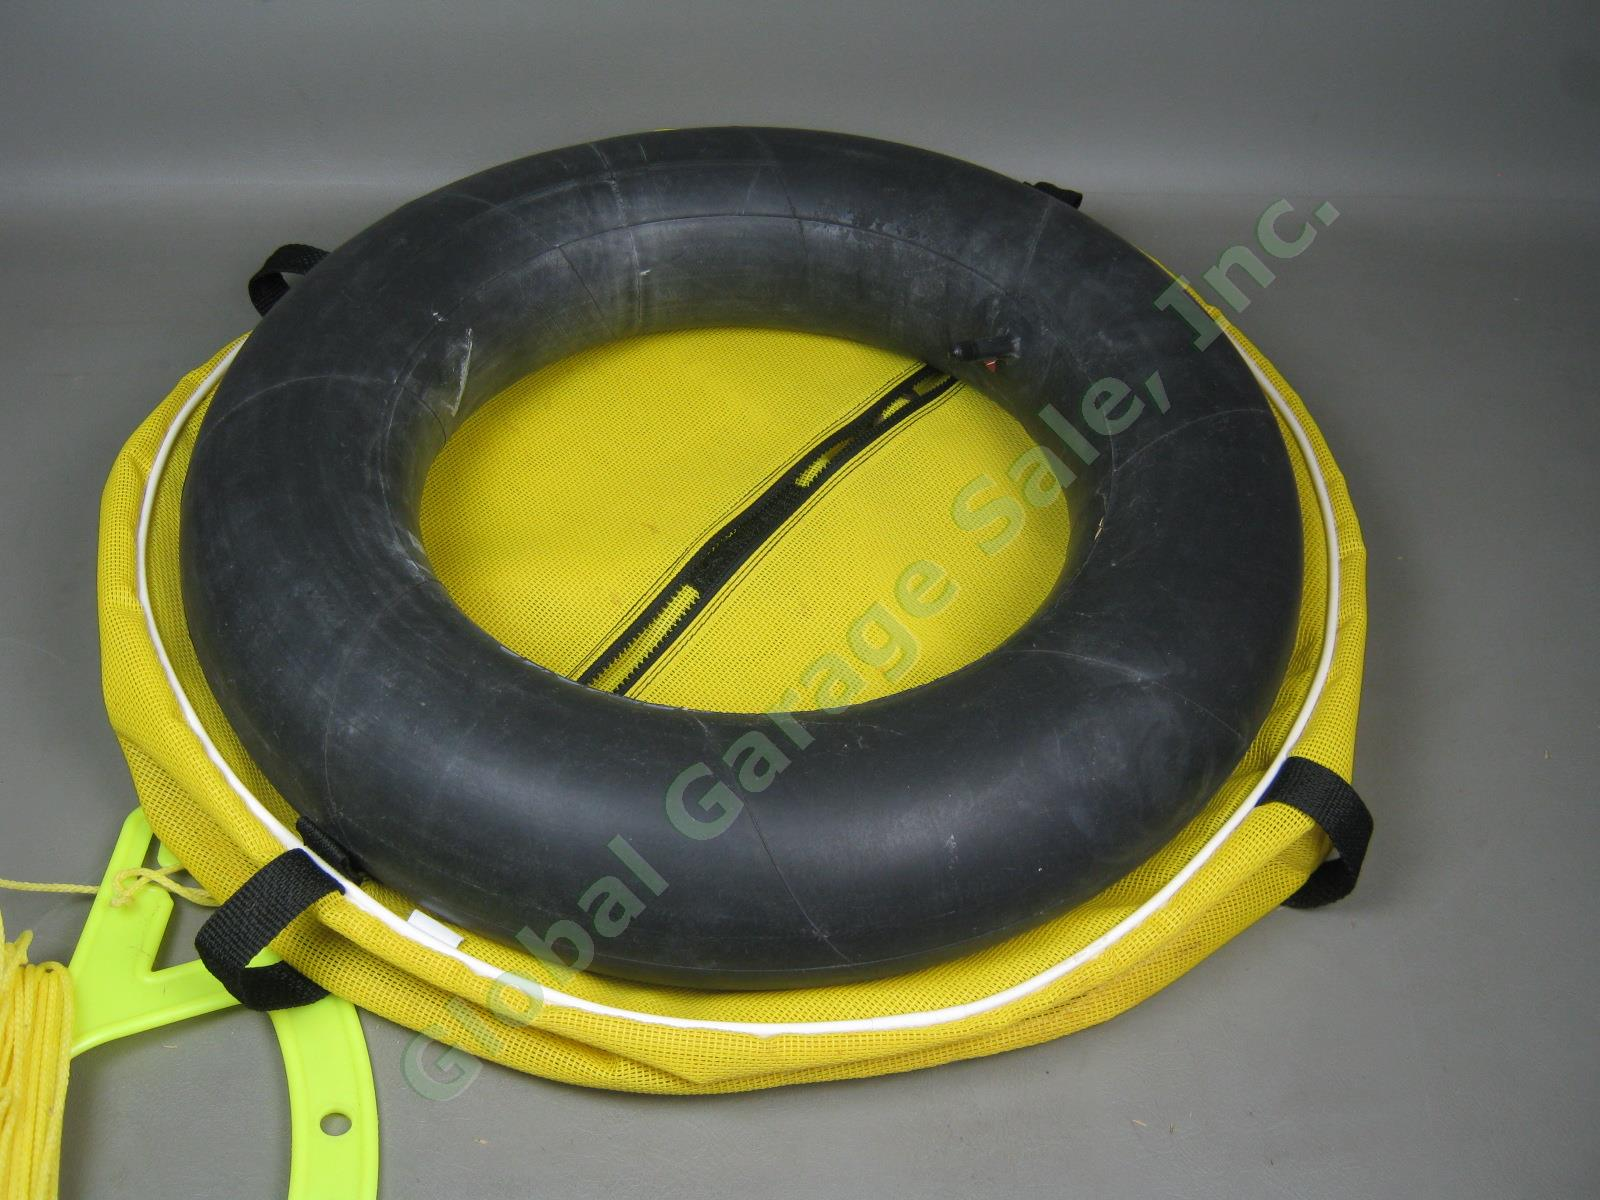 Scuba diving snorkeling dive buoy marker float tube for Dive tube